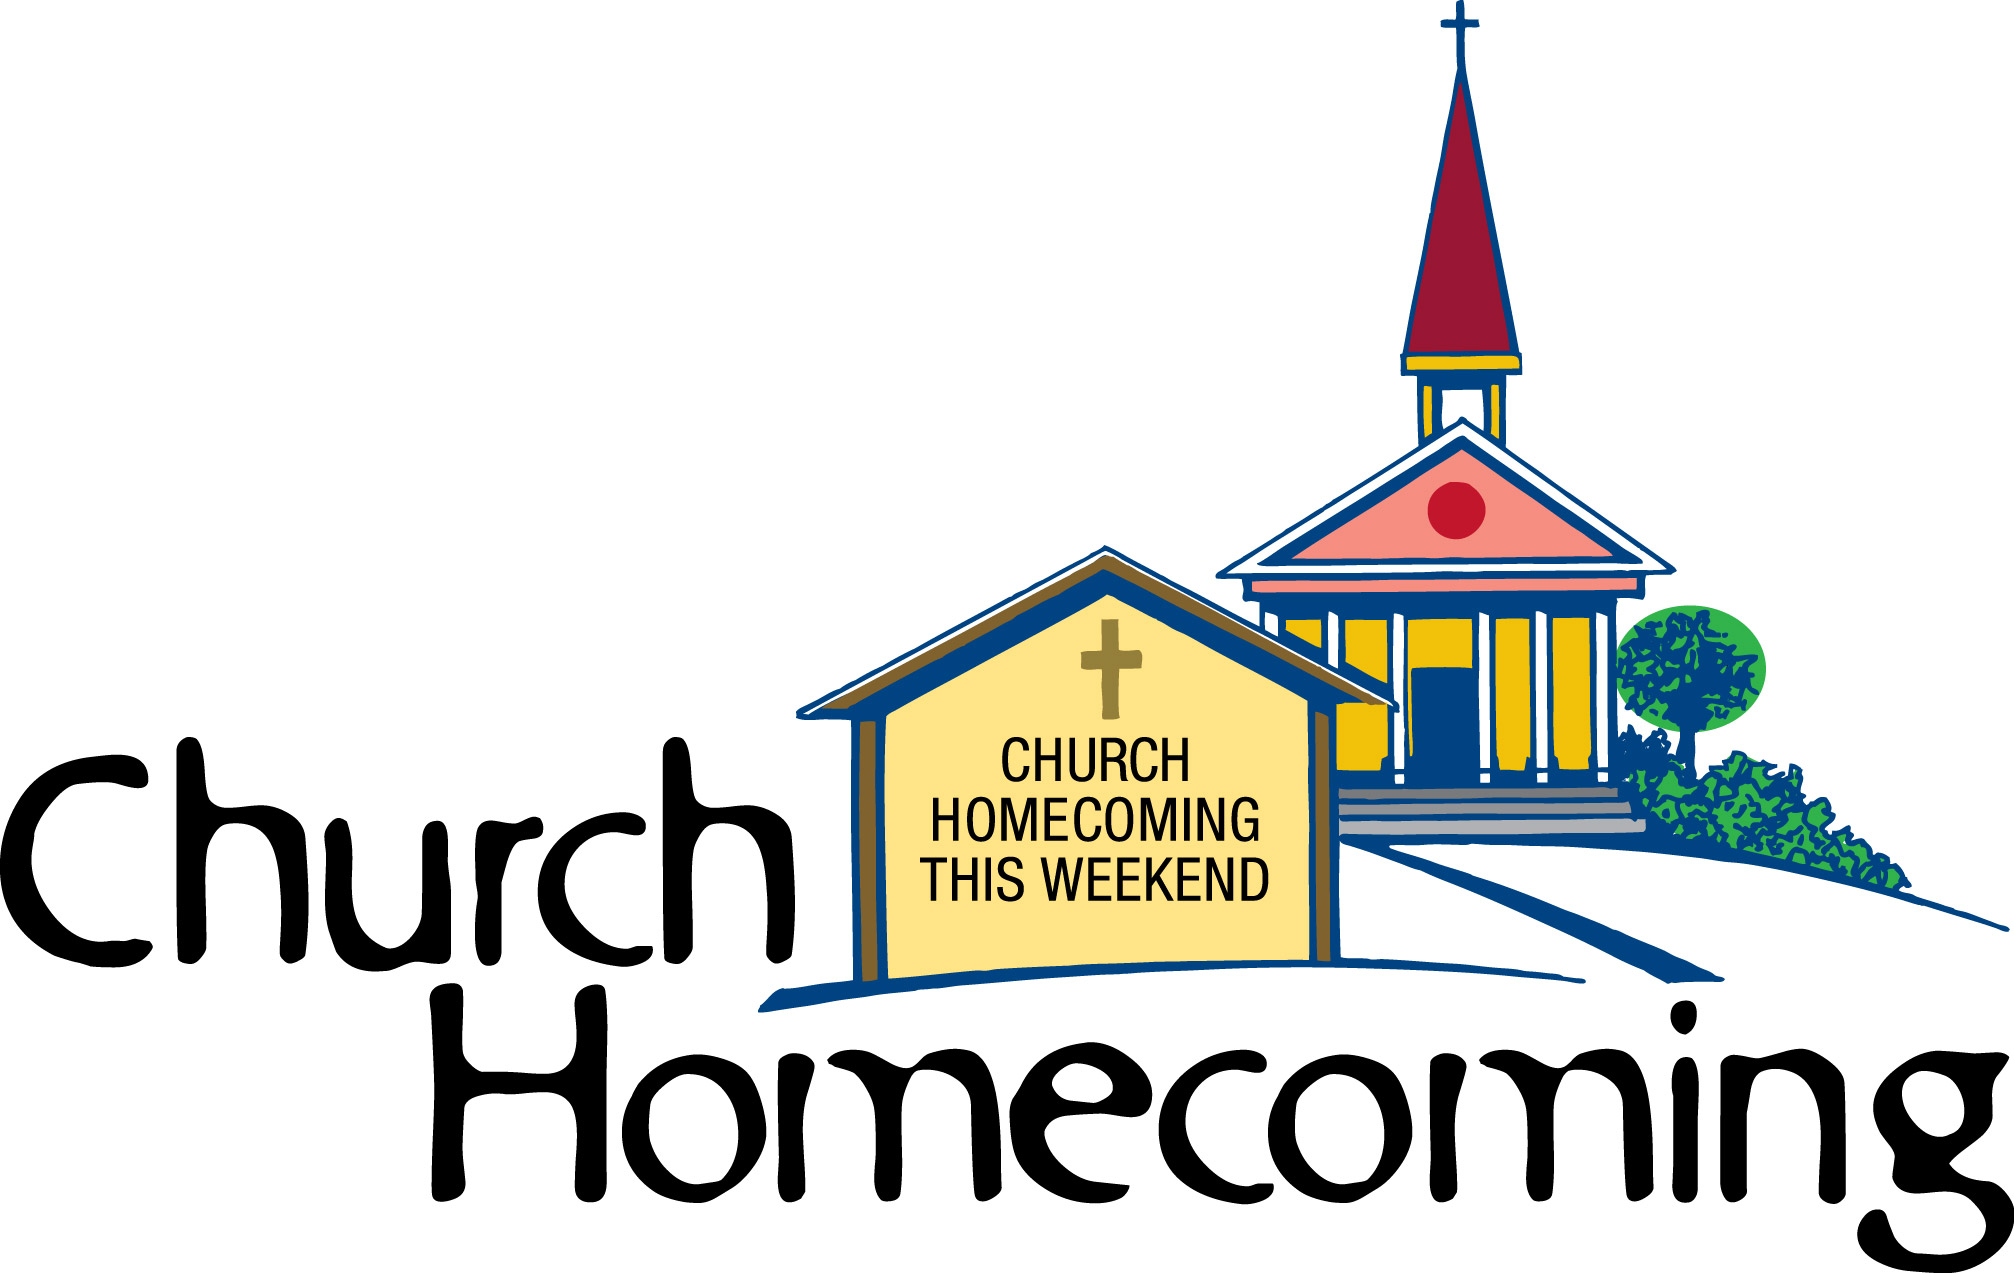 2014x1273 Church Homecoming Clip Art Many Interesting Cliparts